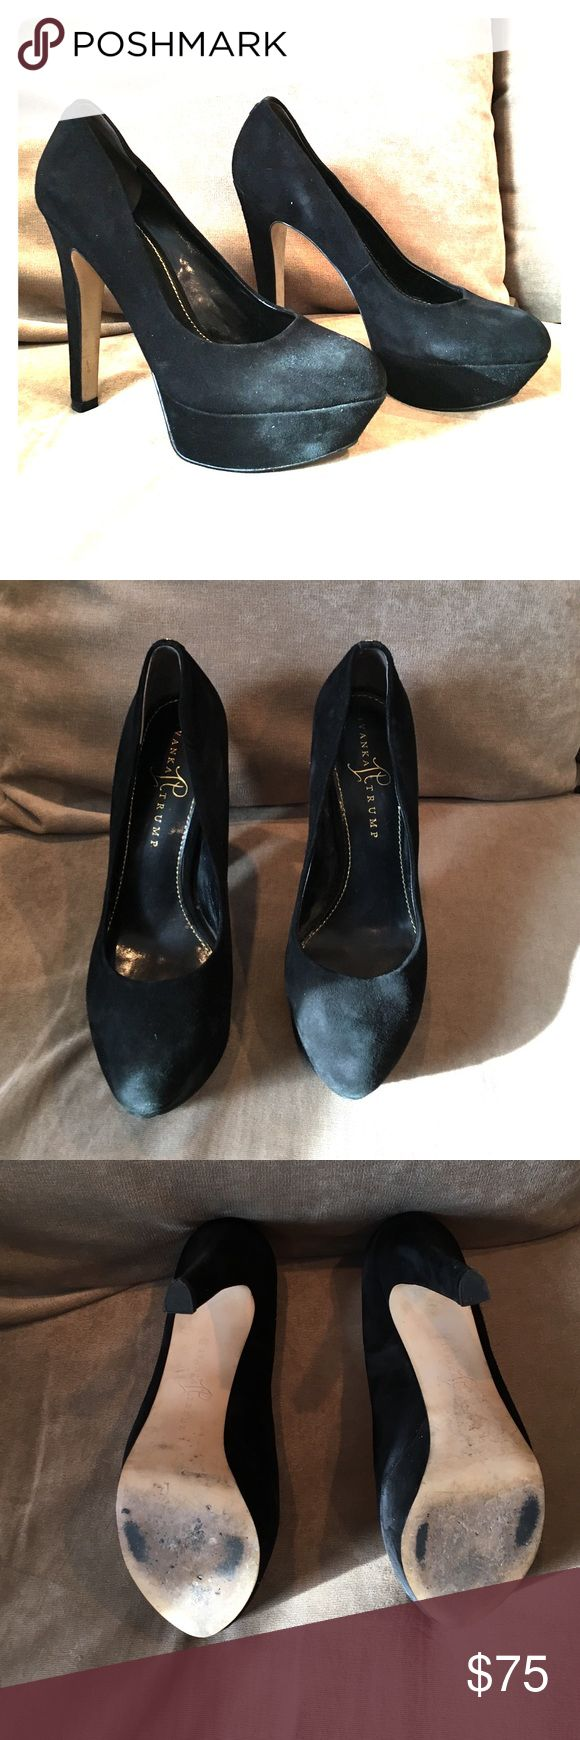 "Black suede platform pumps Ivanka Trump black suede platform pumps. 5"" heel, 1.5"" platform. Excellent condition, worn 1 time. Size 8.5 Ivanka Trump Shoes Heels"